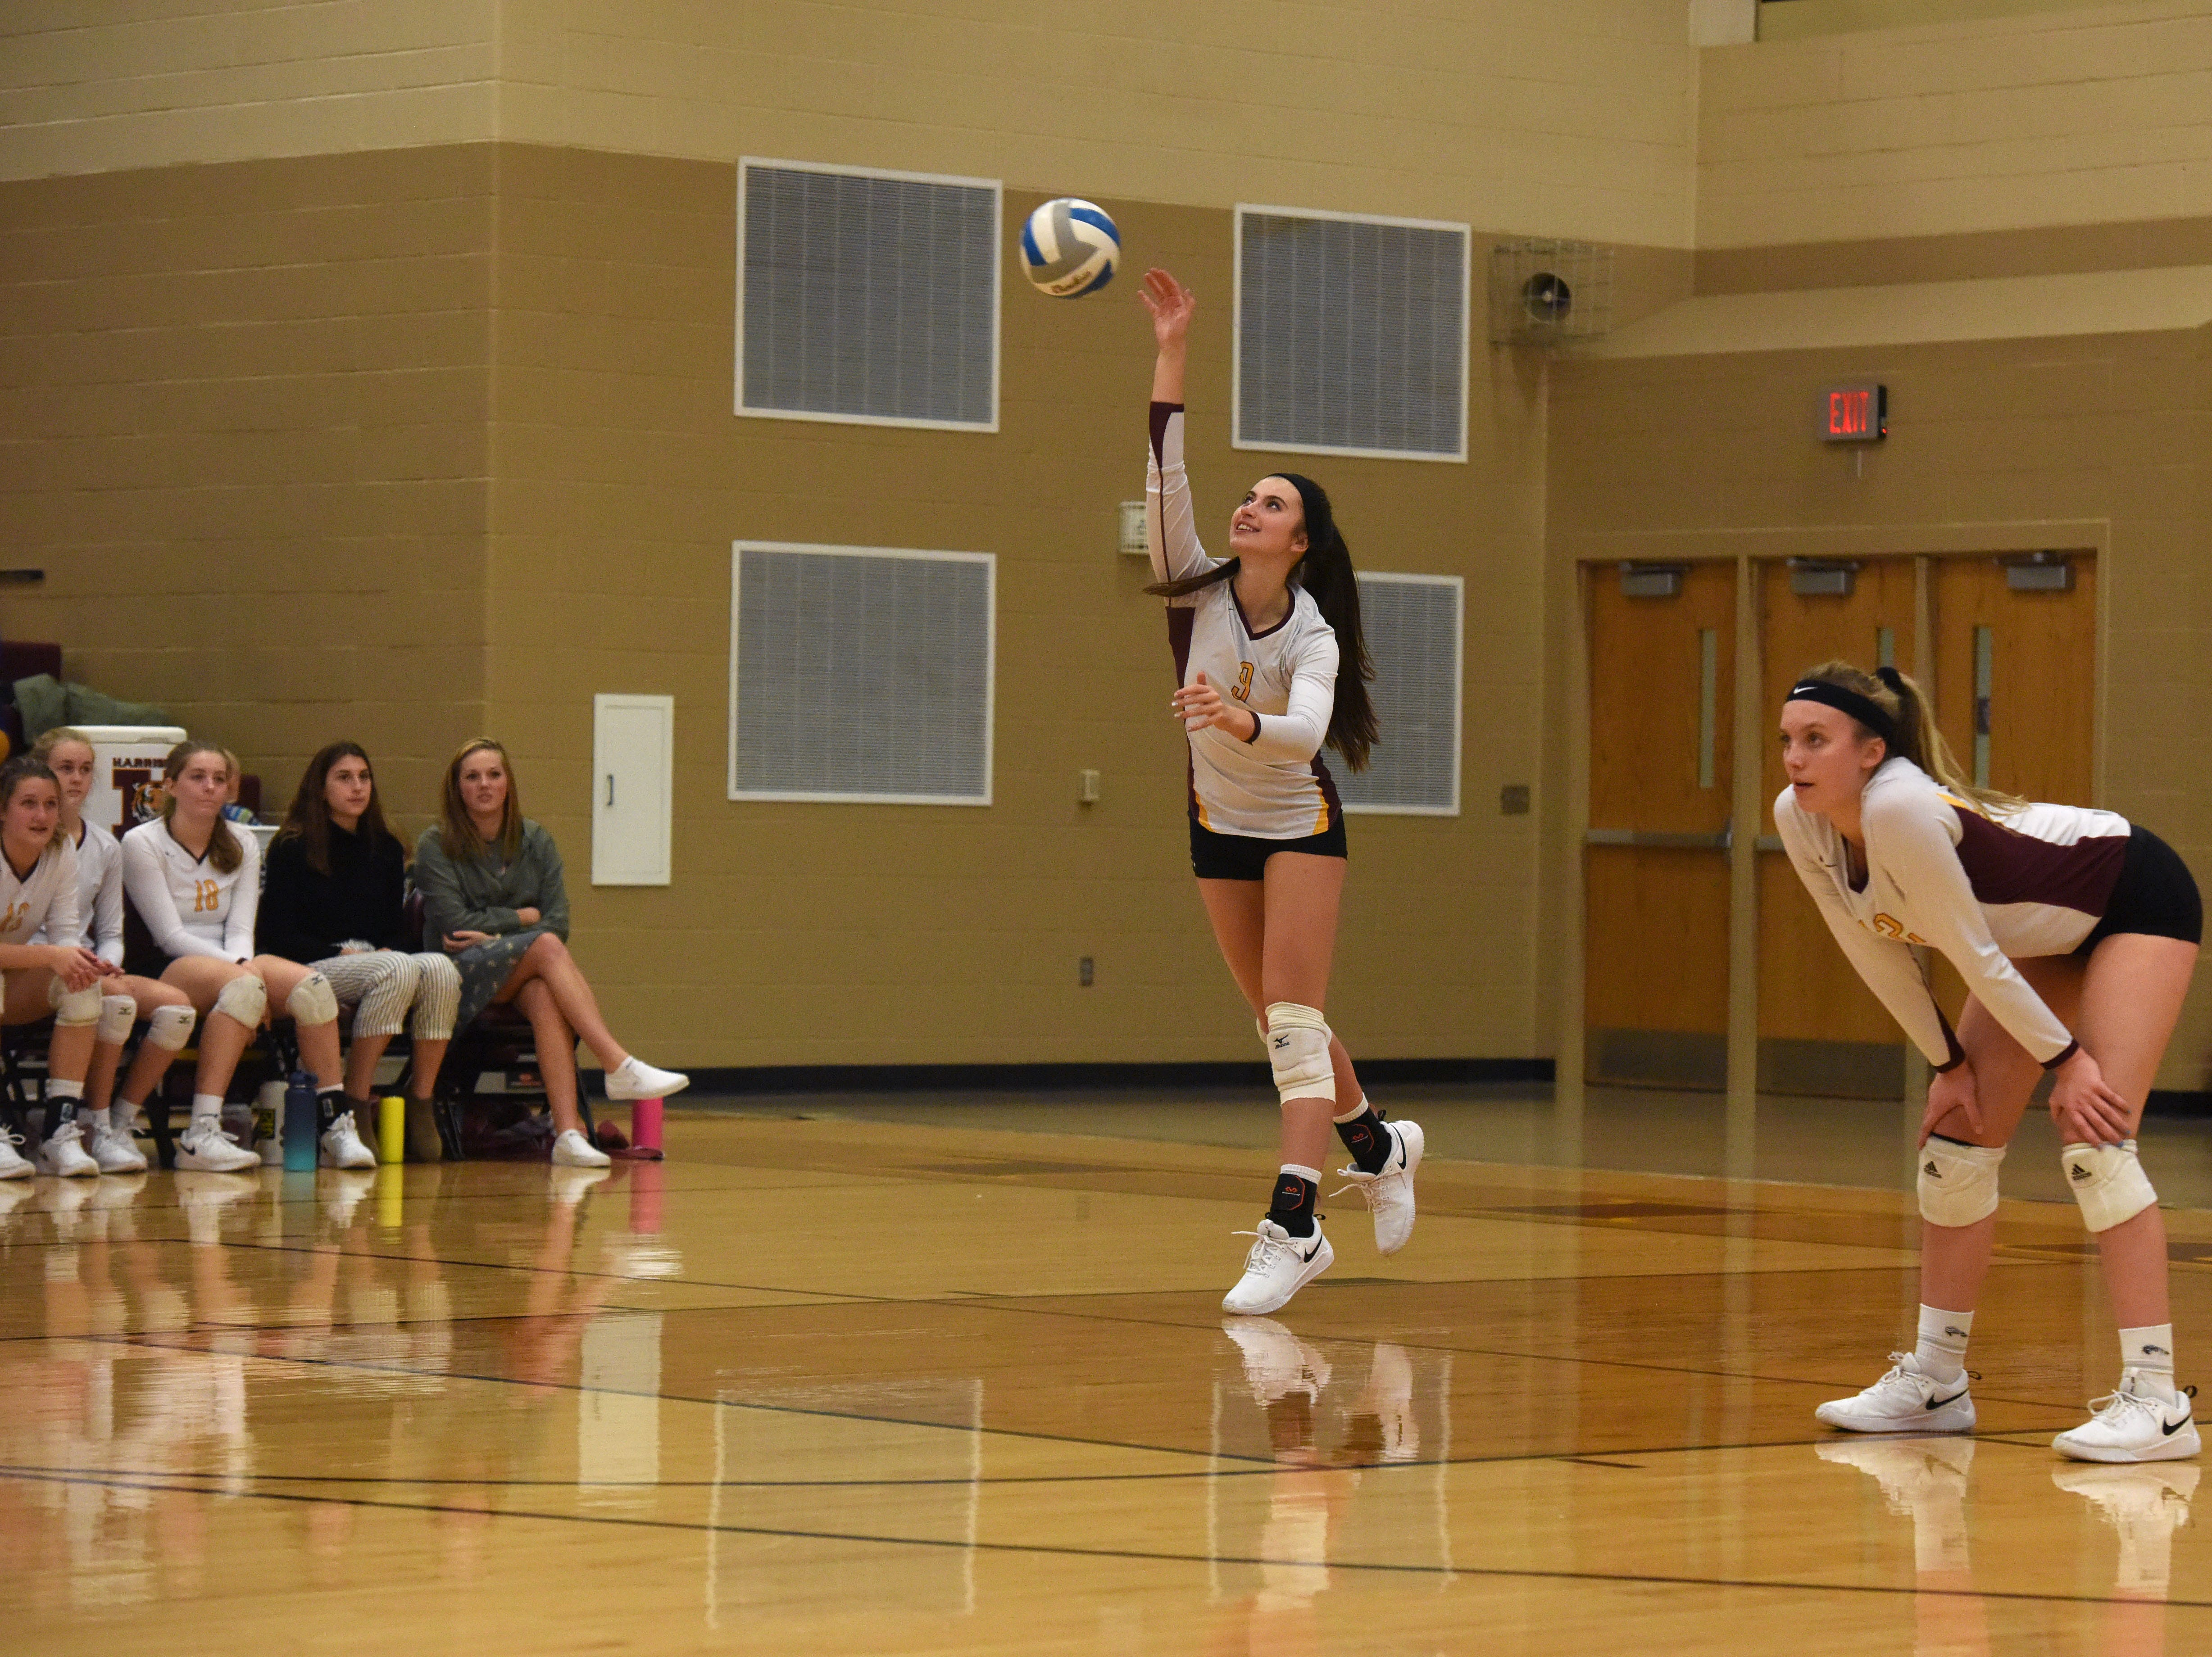 Harrisburg's Julia Sanderson (9) serves the ball during a match against Brookings Tuesday, Oct. 30, 2018 in Harrisburg, S.D.